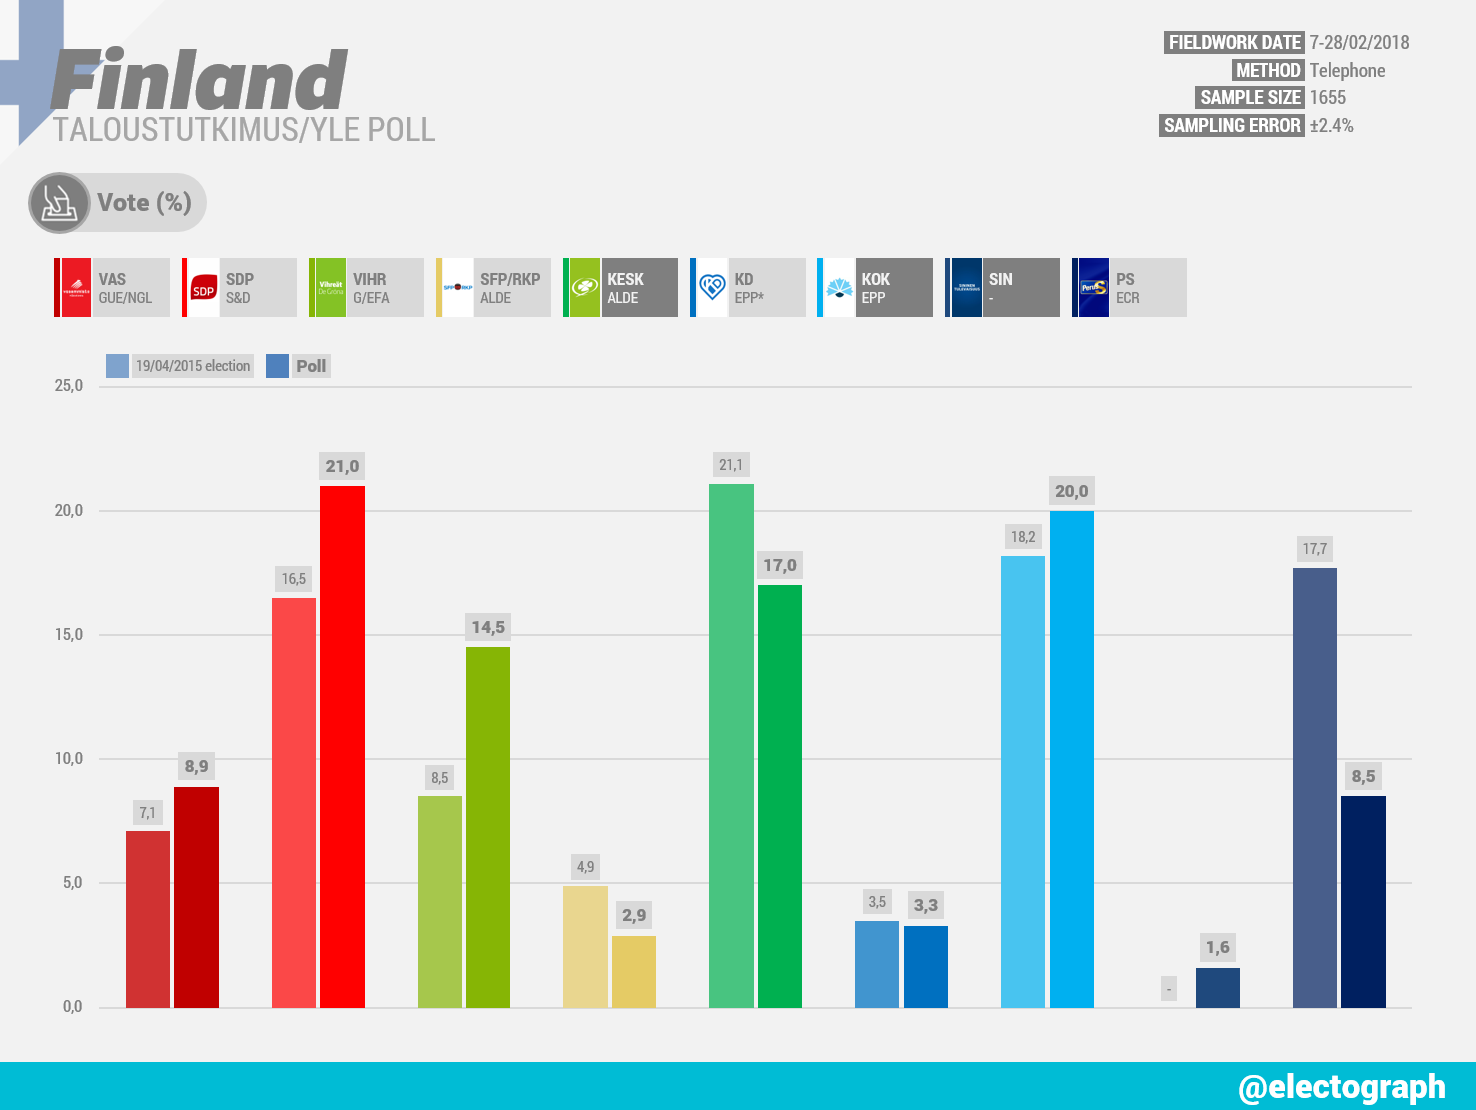 FINLAND Taloustutkimus poll chart for Yle, February 2018